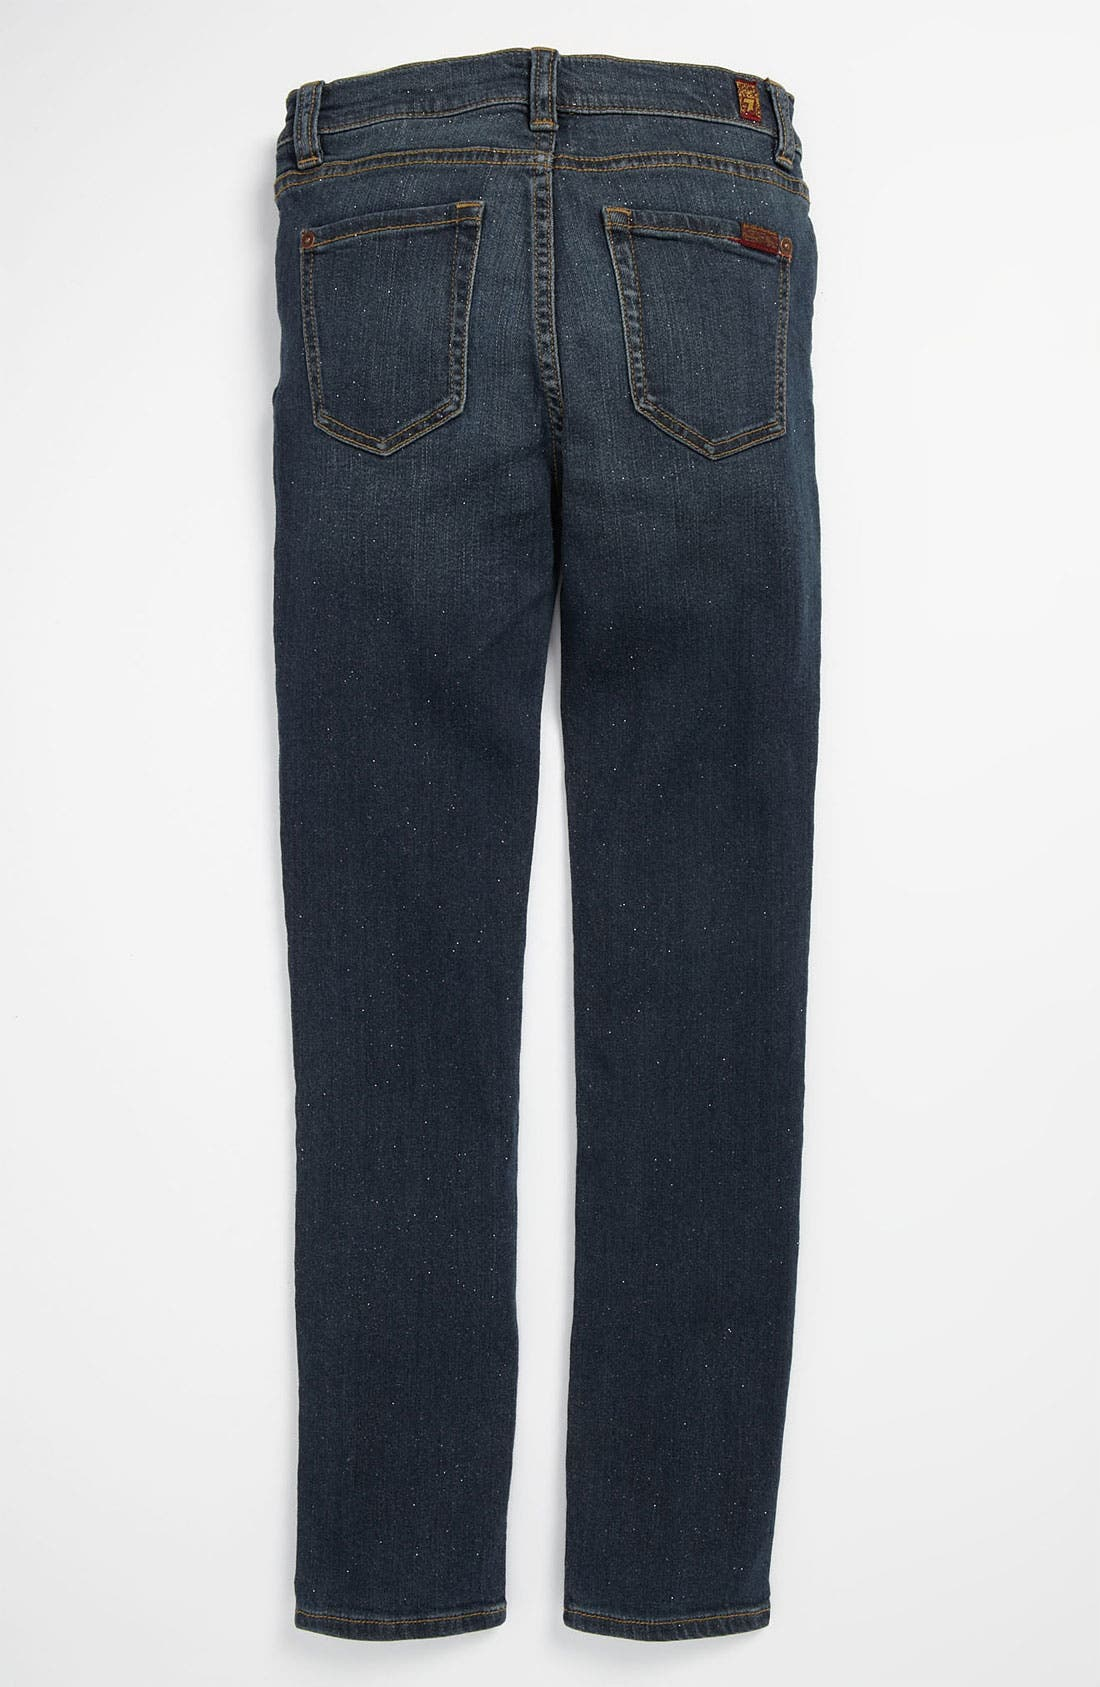 Main Image - 7 For All Mankind® Sparkle Stretch Skinny Leg Jeans (Big Girls)